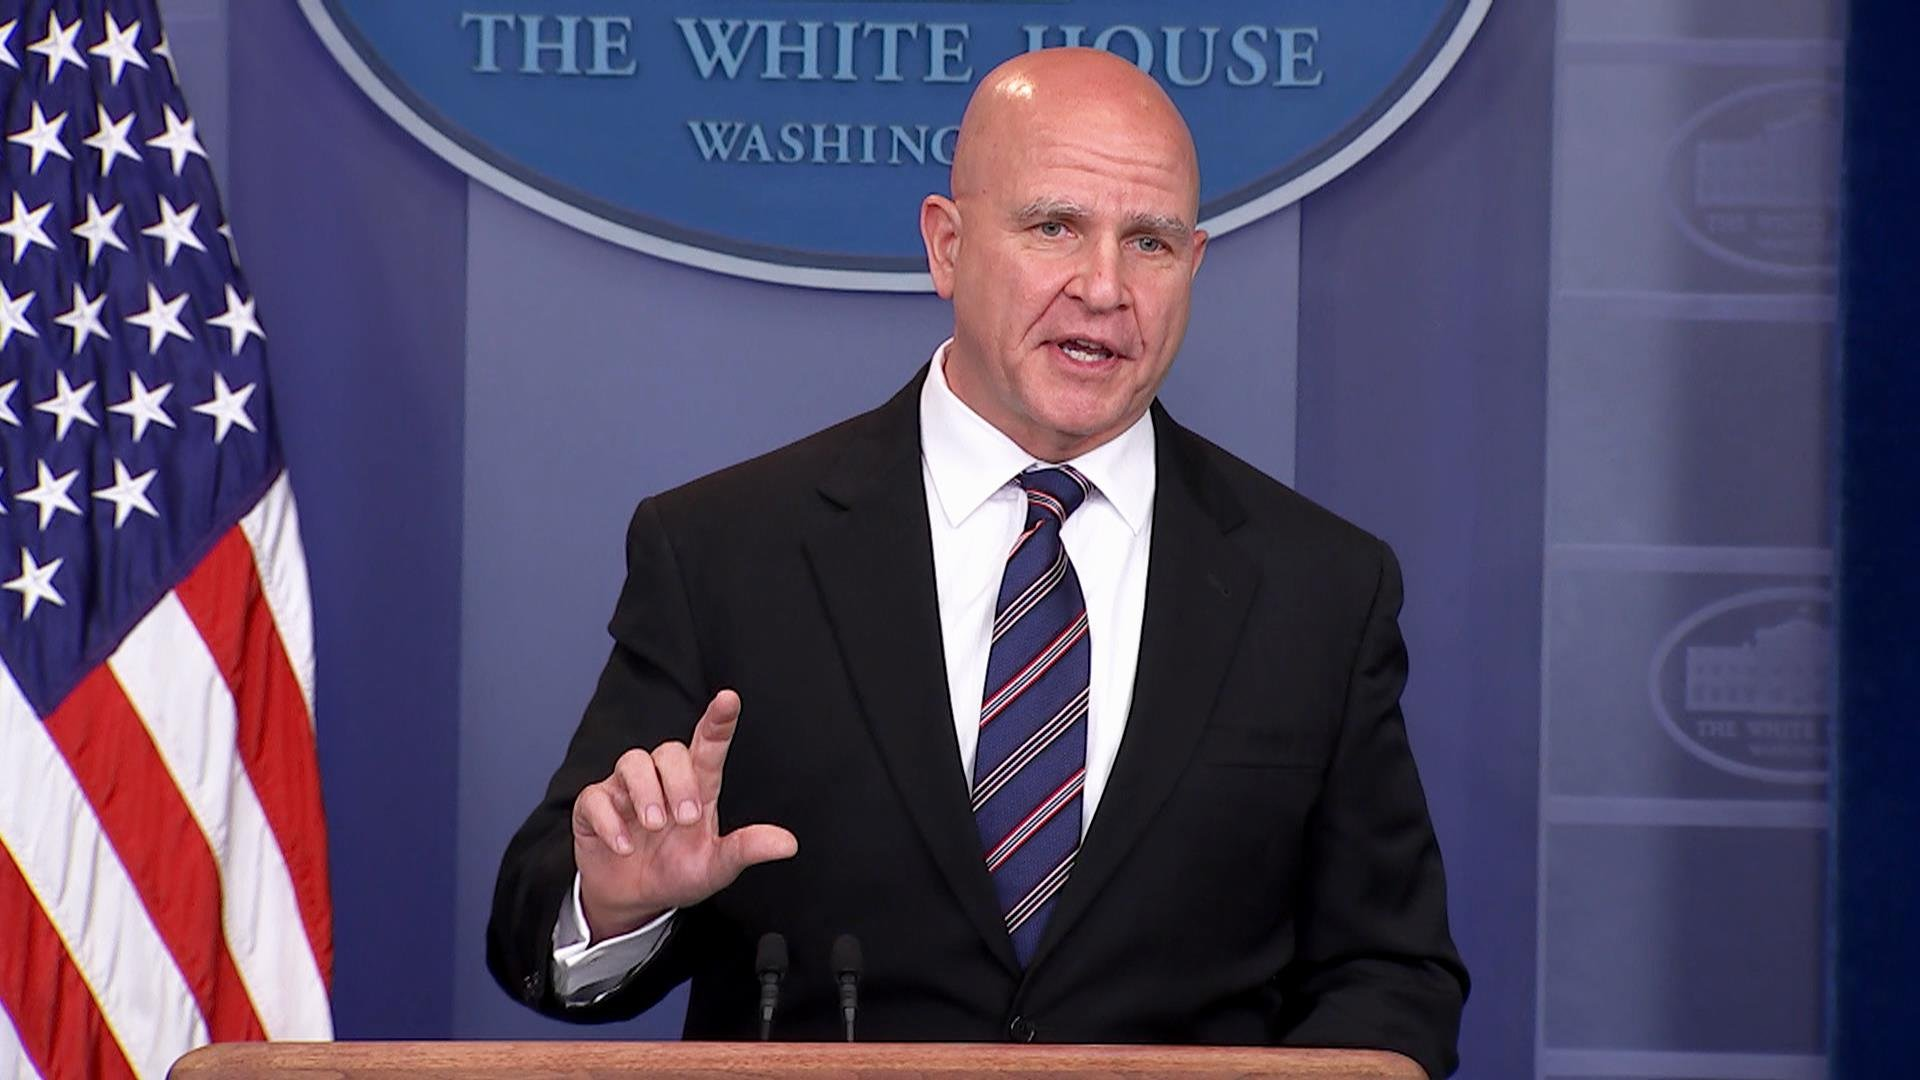 National security adviser HR McMaster to be replaced